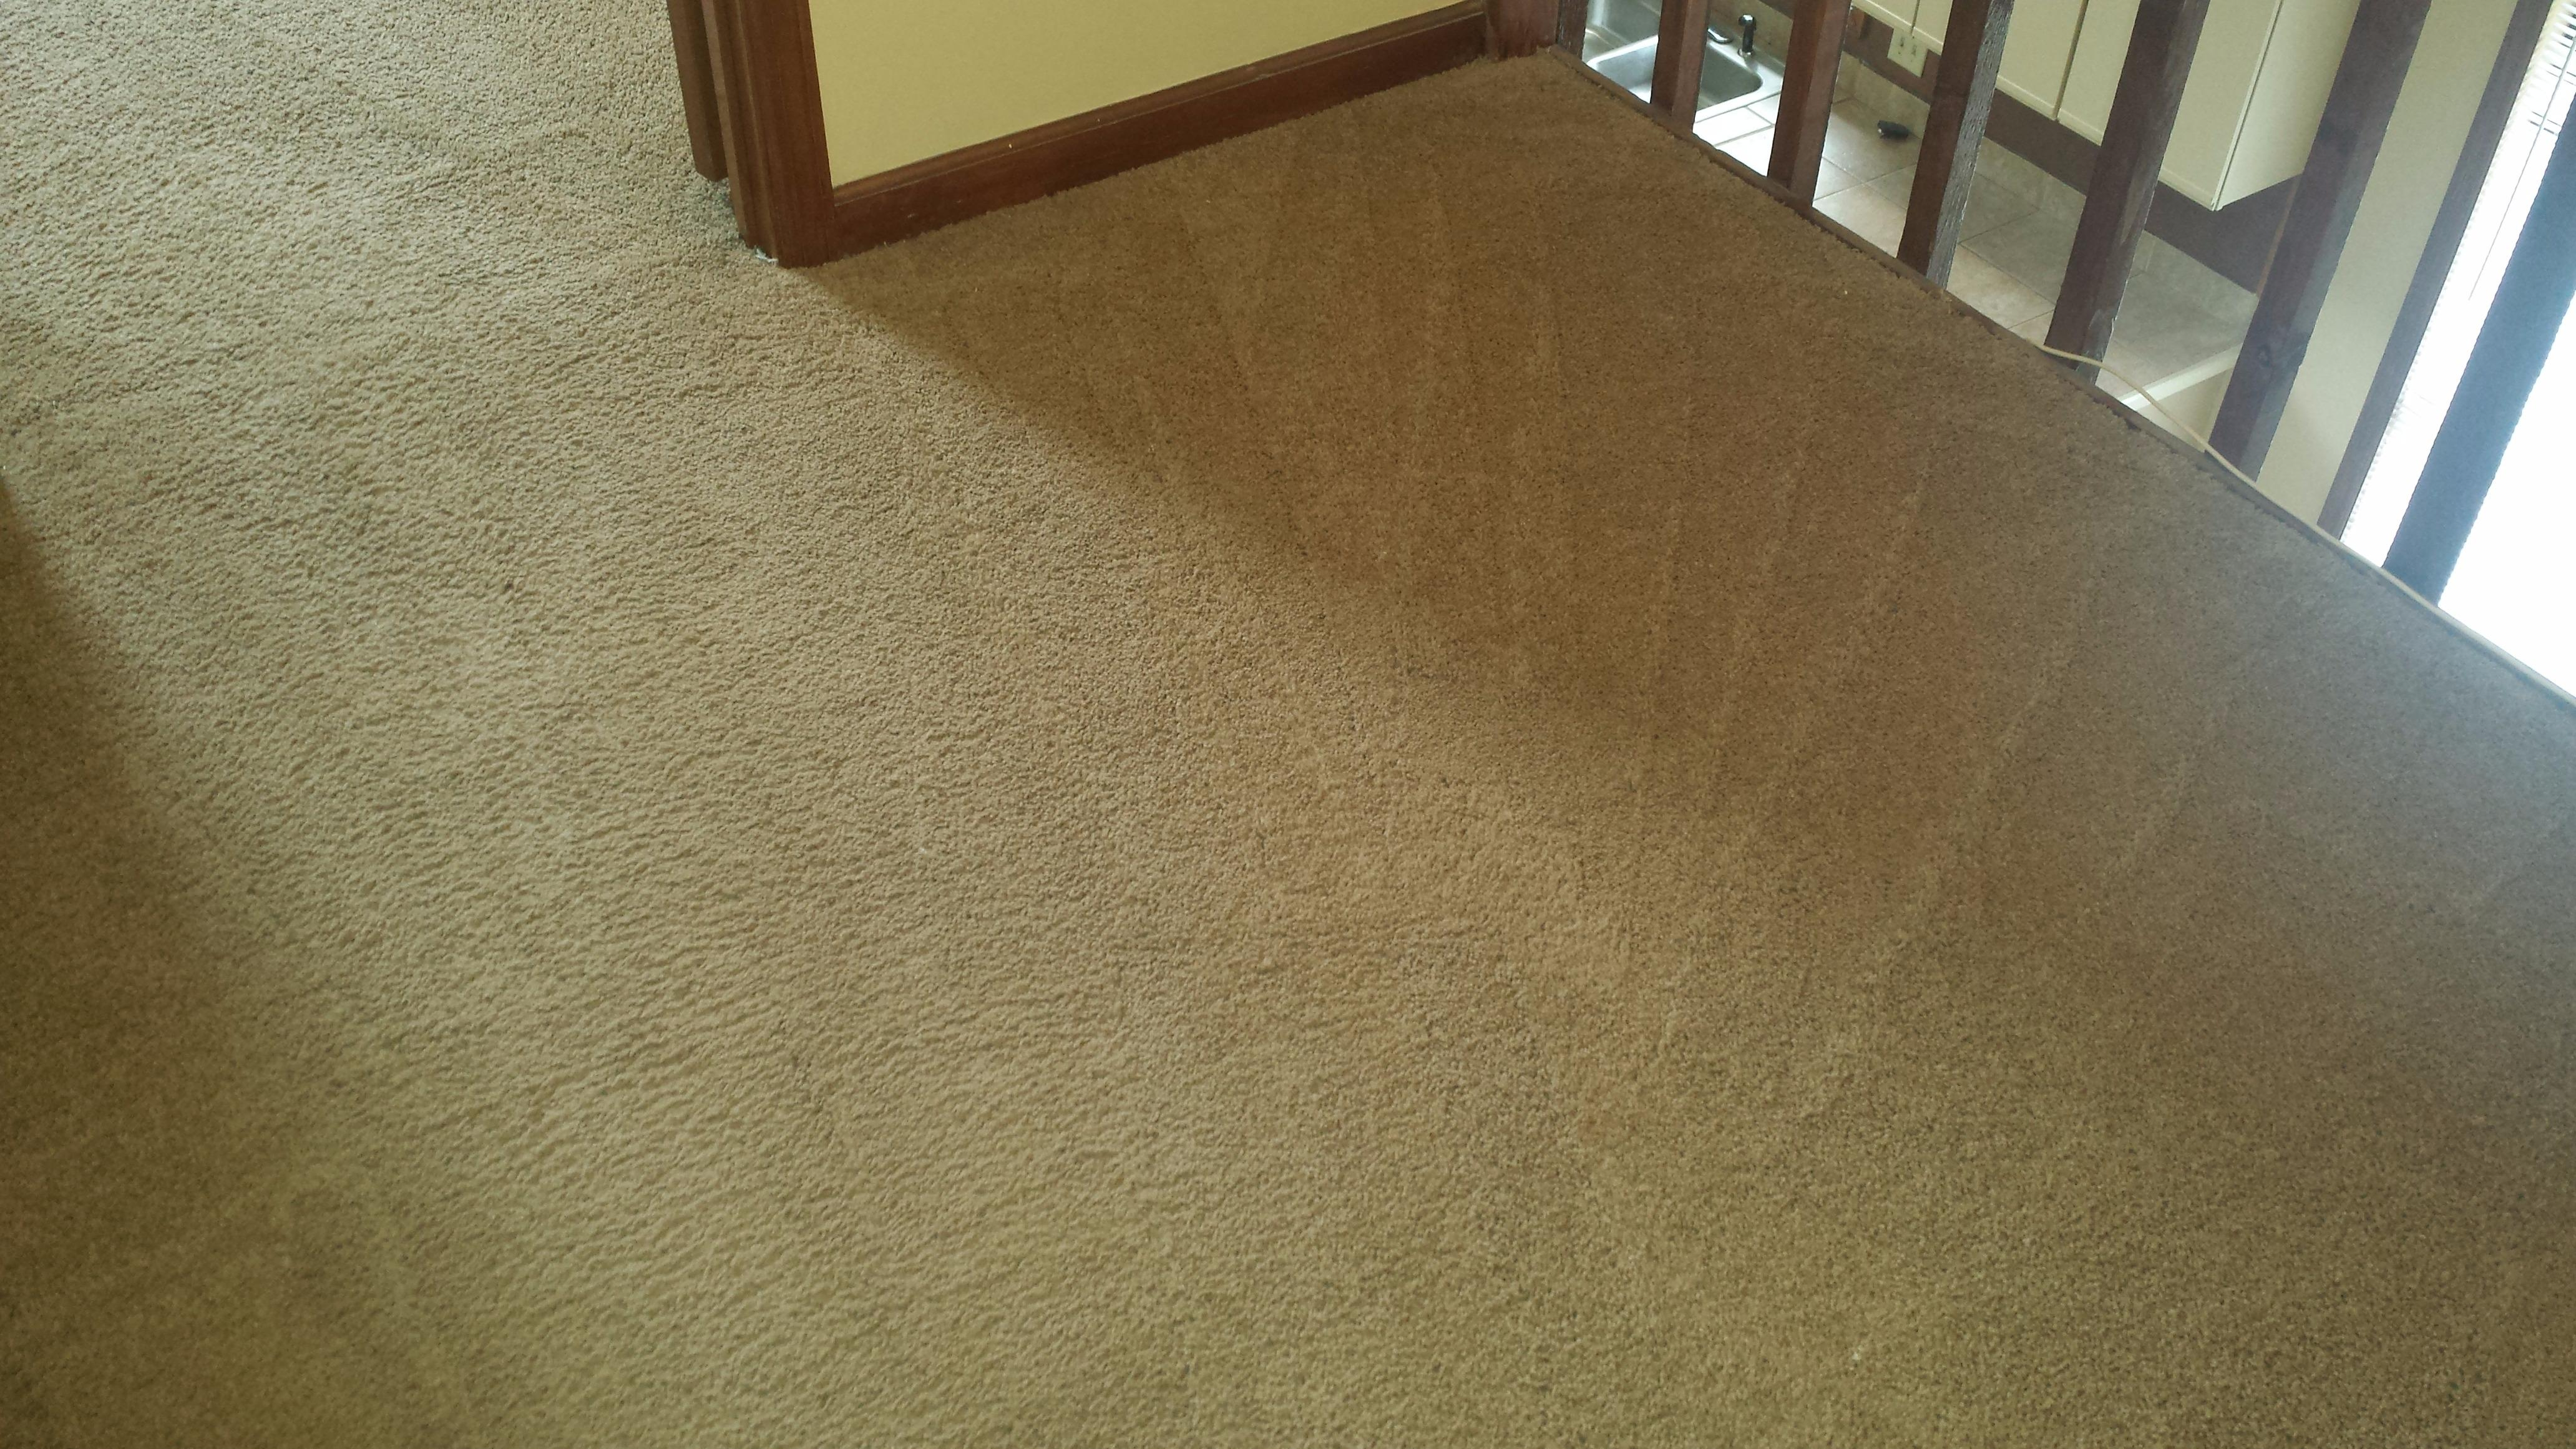 VeriClean Carpet Cleaning Coupons near me in Smyrna : 8coupons